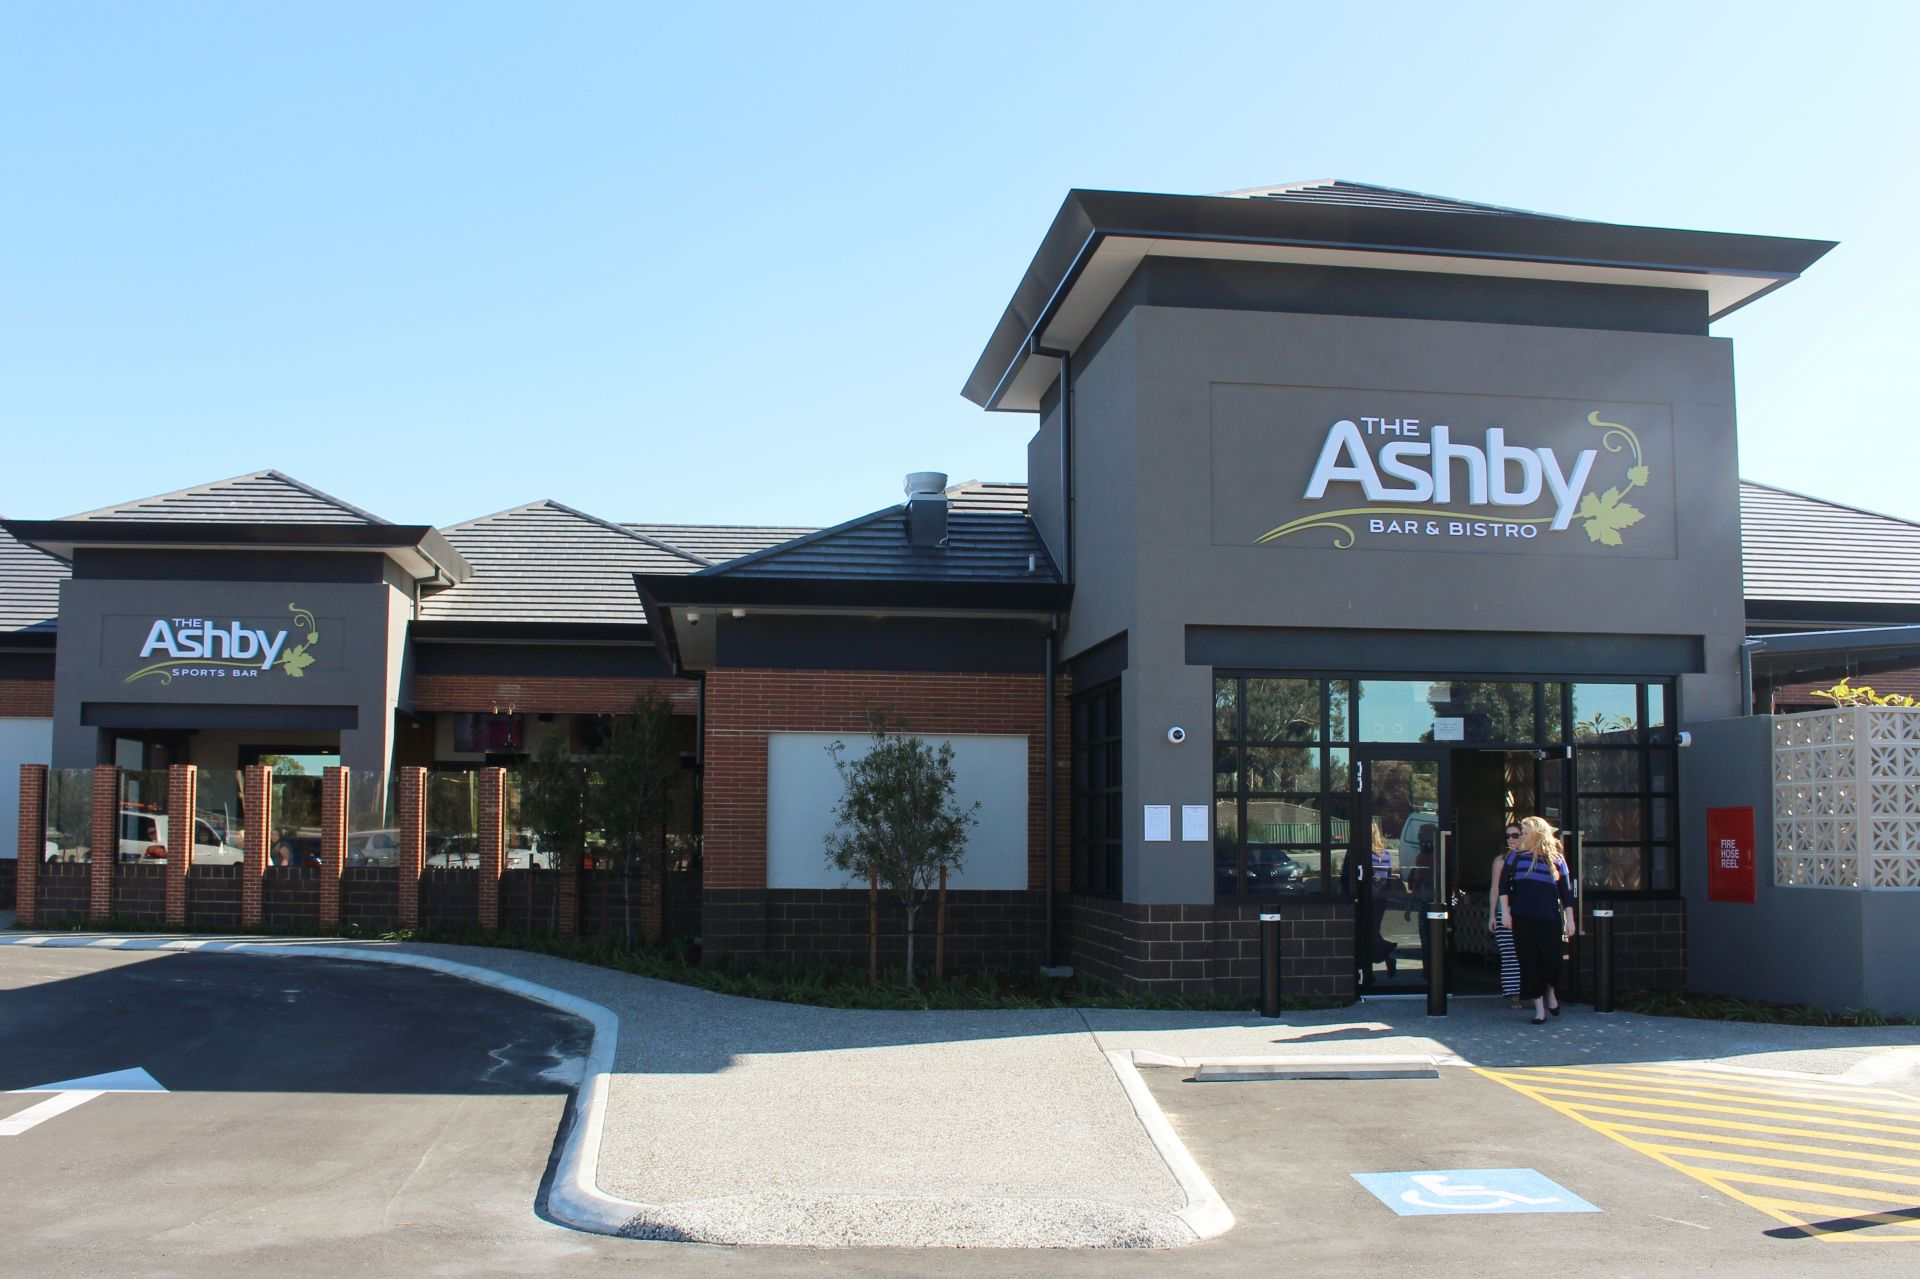 The Ashby Bar and Bistro